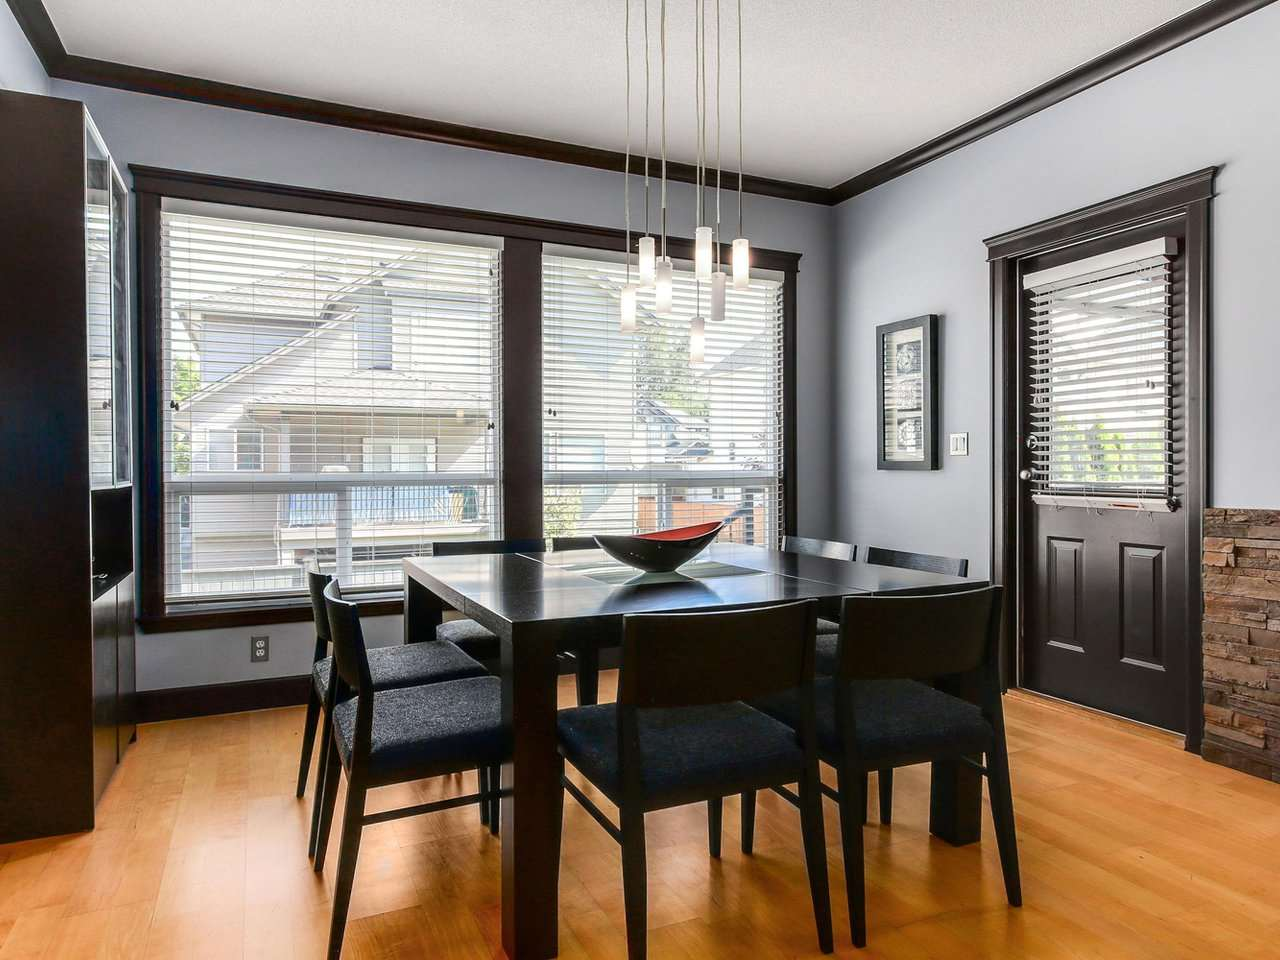 Detached at 11243 TULLY CRESCENT, Pitt Meadows, British Columbia. Image 8